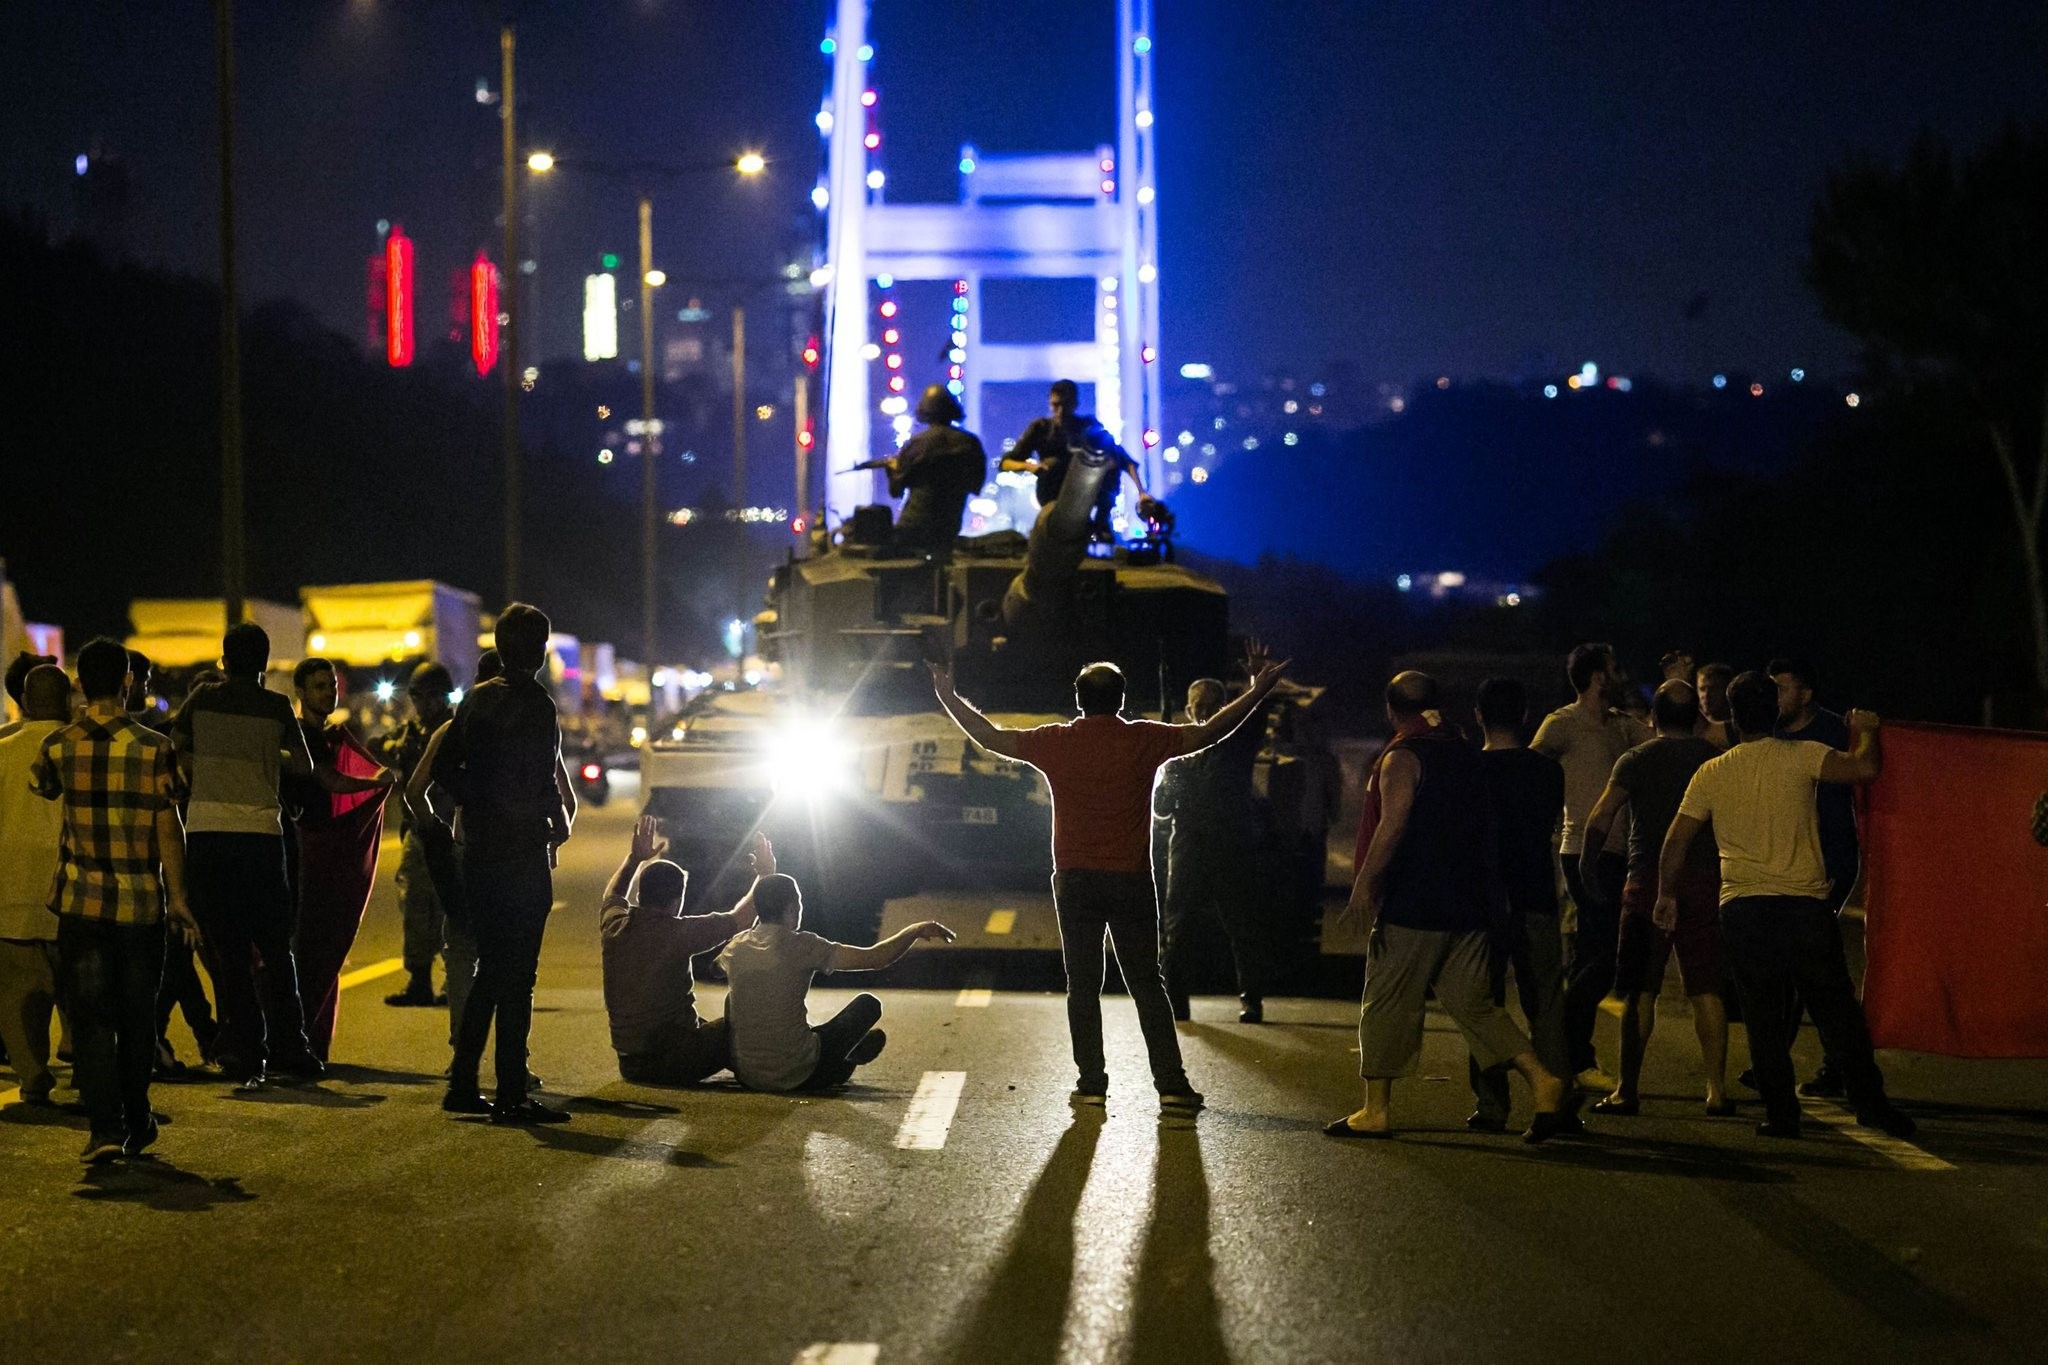 People taking over a tank near Istanbulu2019s Fatih Sultan Mehmet bridge during clashes with the Gu00fclenist coup plotters who were staging a coup attempt in the night of July 15, 2016.